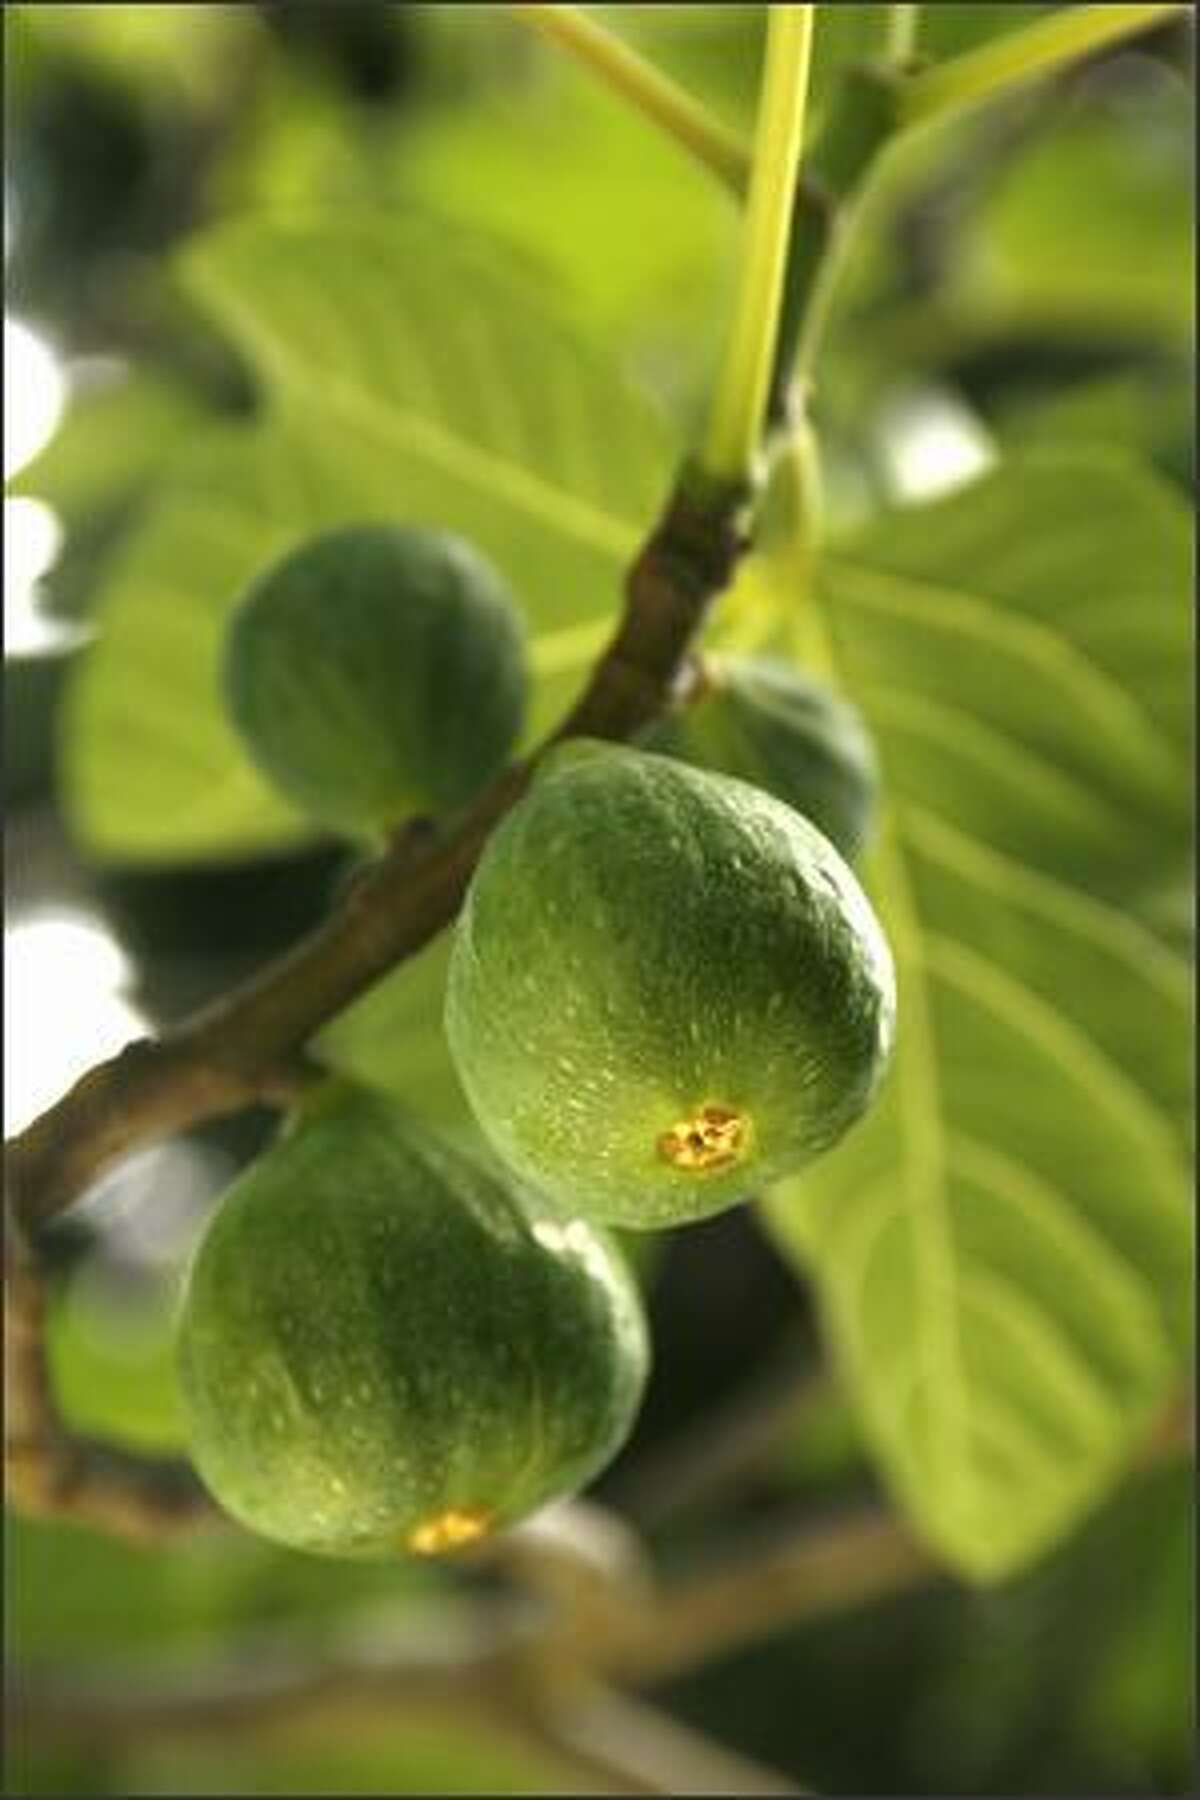 Figs have a short shelf life - about 72 hours - making them a difficult sell.